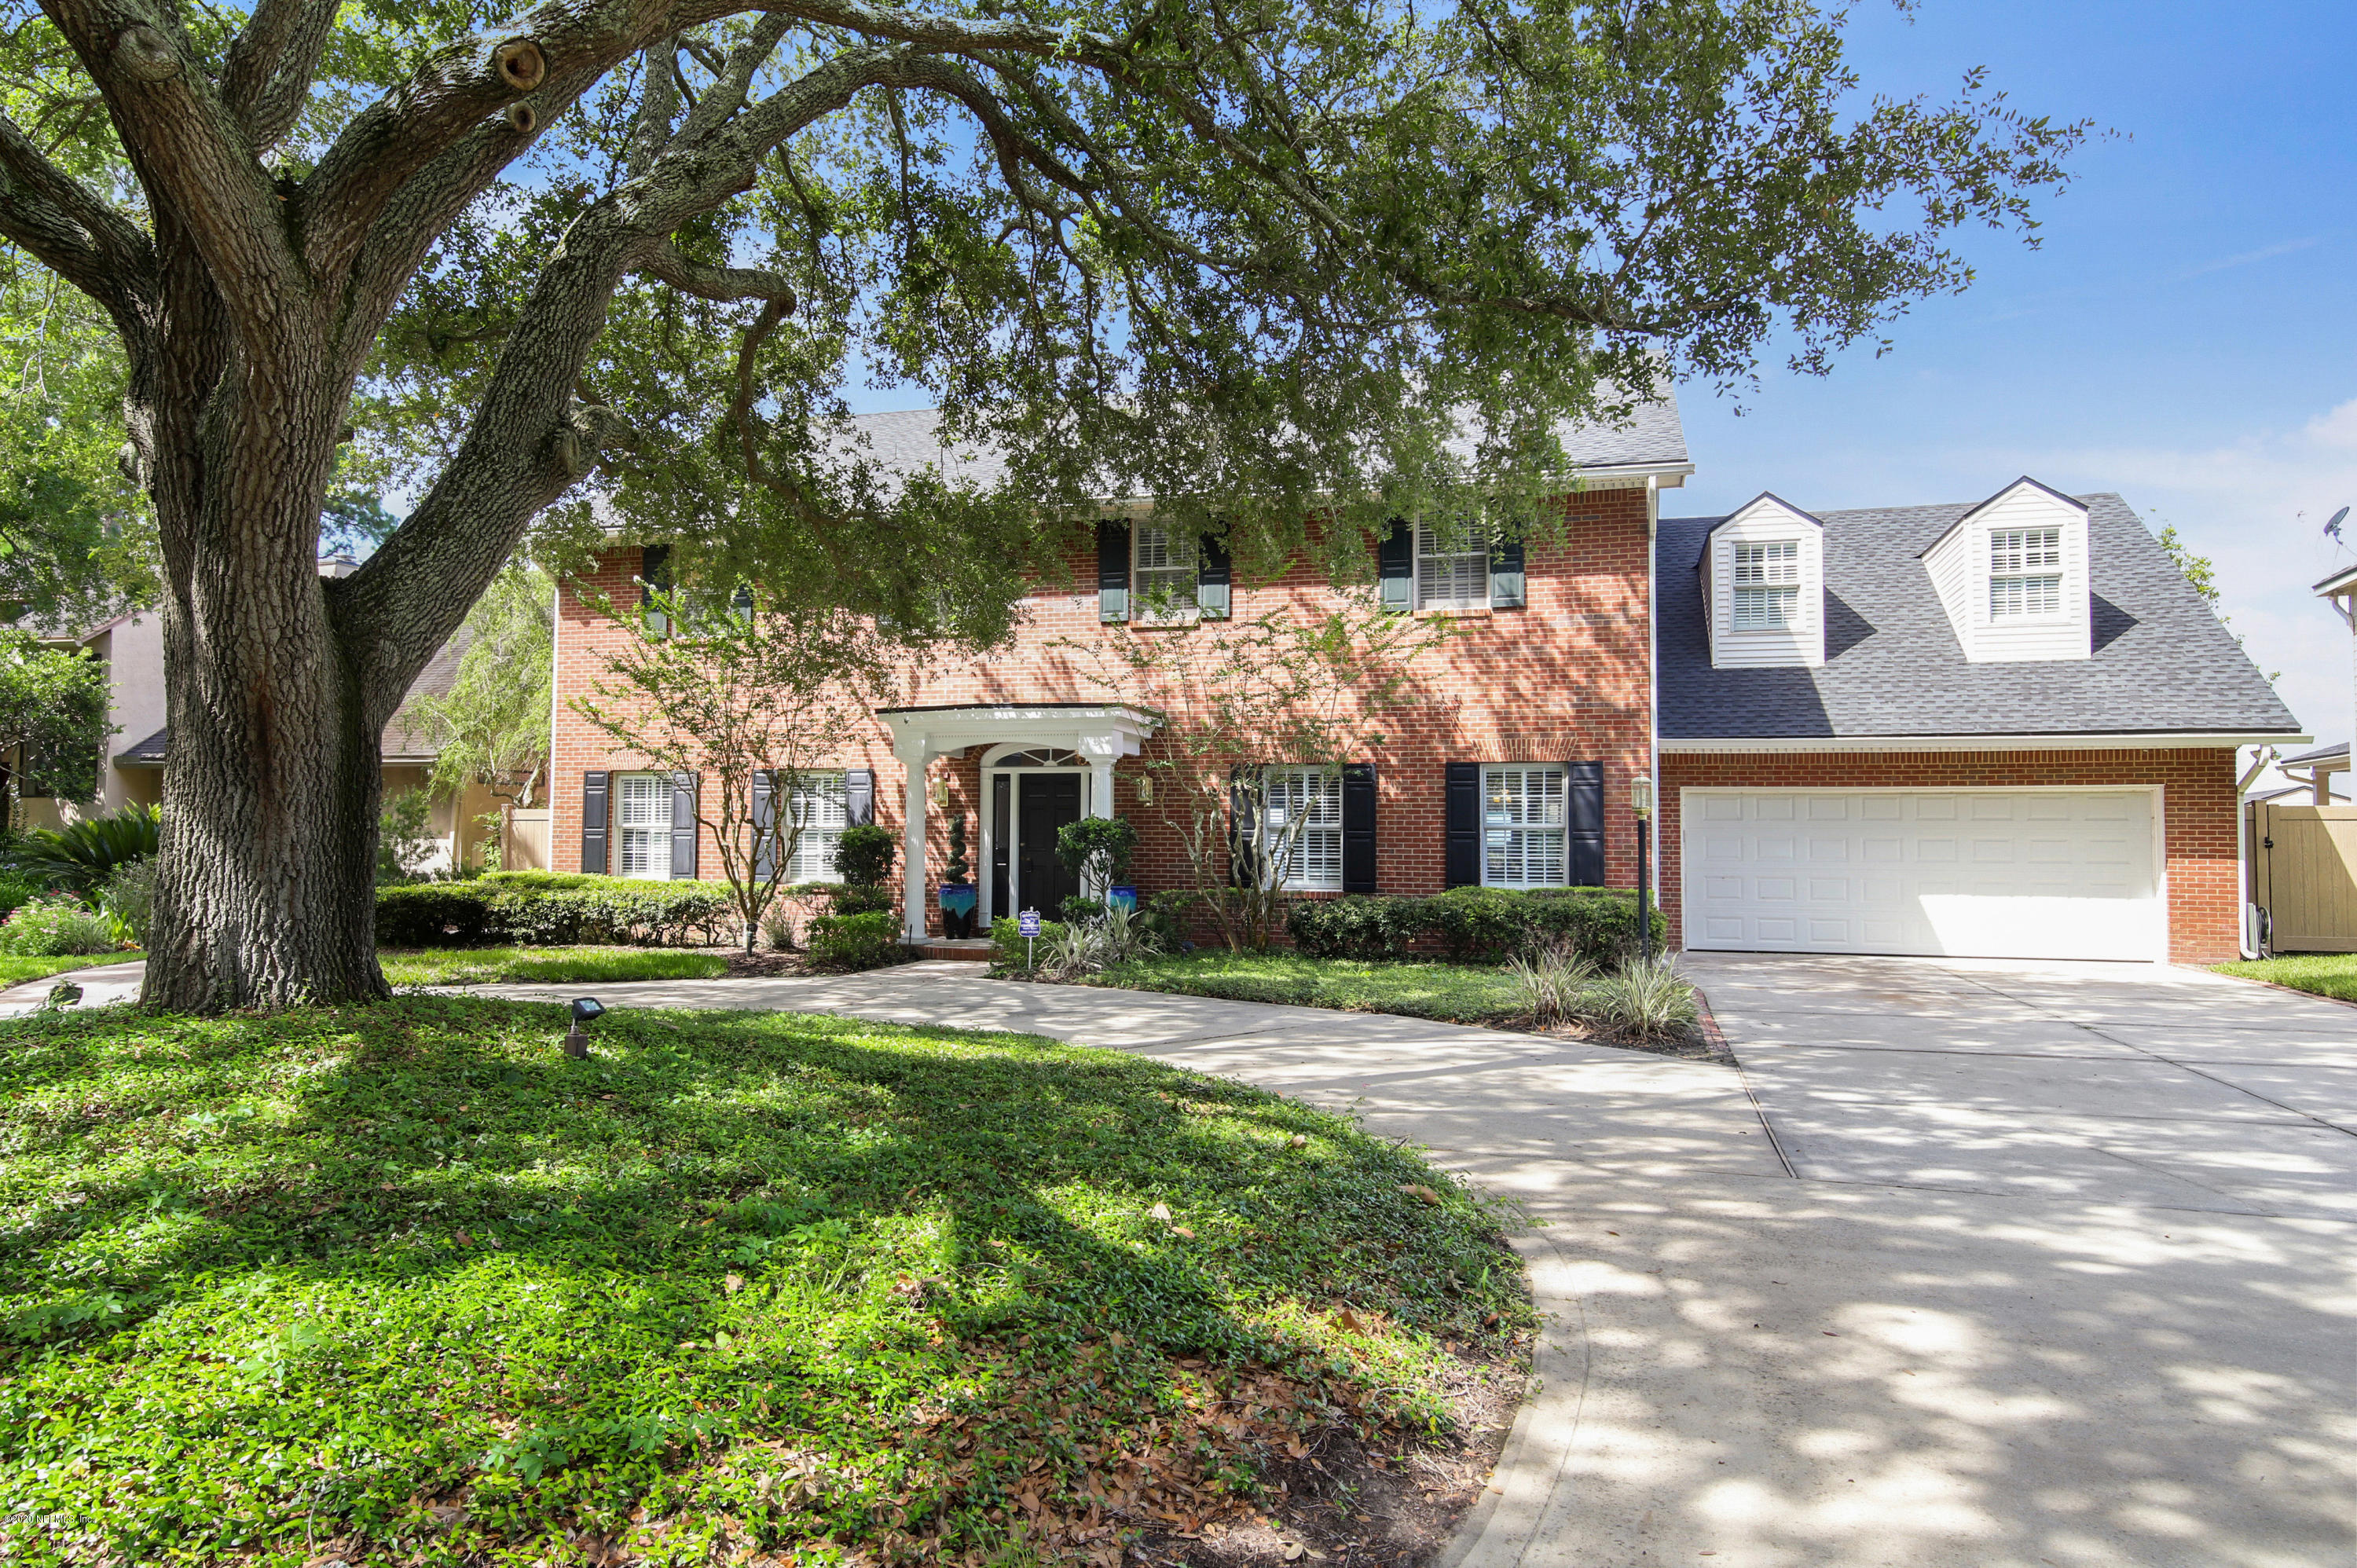 6526 CHRISTOPHER POINT, JACKSONVILLE, FLORIDA 32217, 5 Bedrooms Bedrooms, ,5 BathroomsBathrooms,Residential,For sale,CHRISTOPHER POINT,1060939